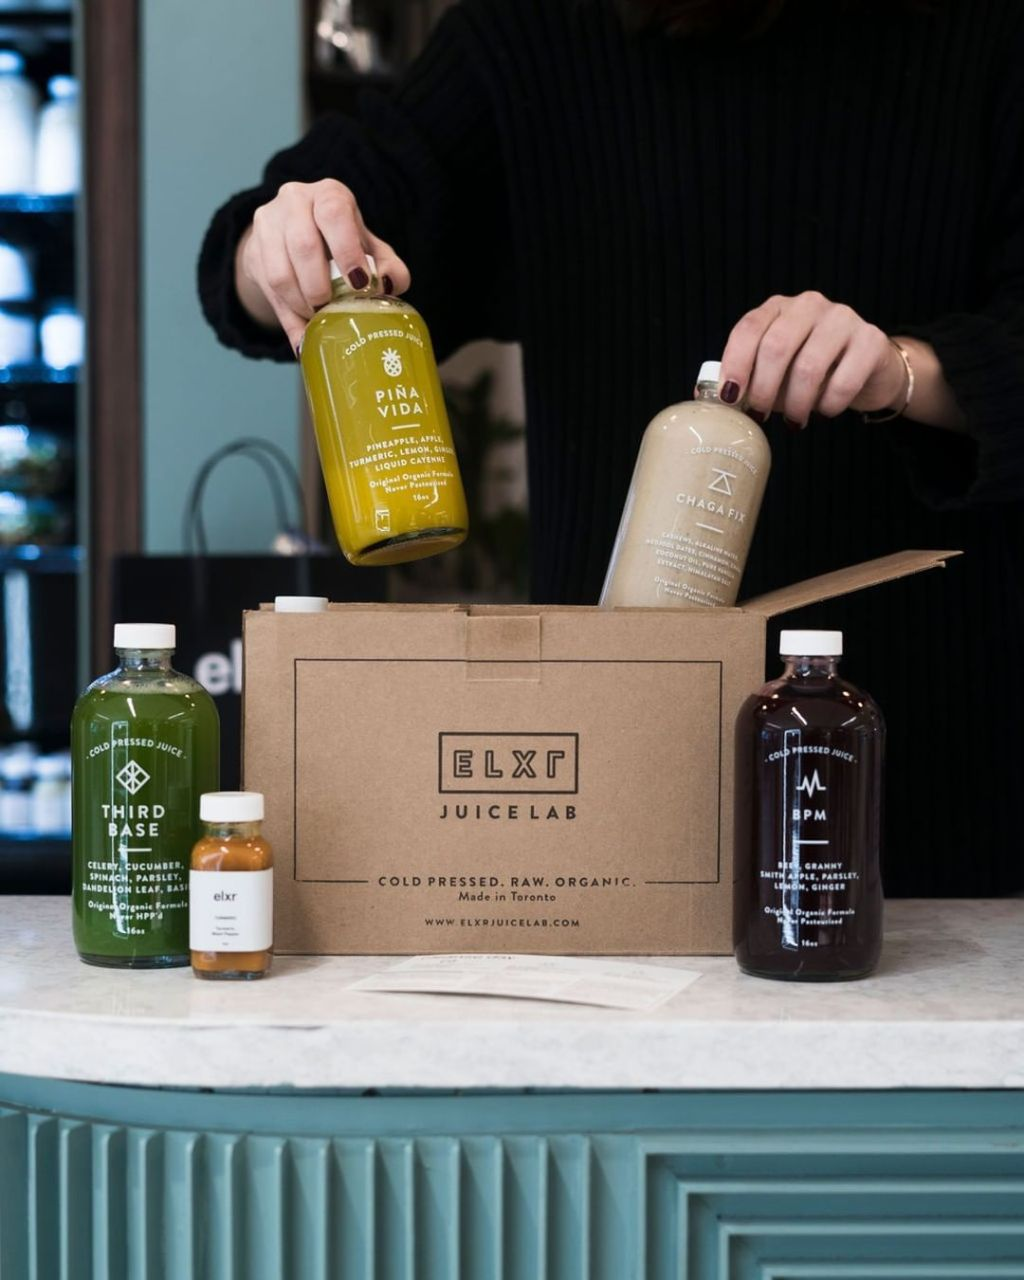 ELXR ensuring to market in their packaging that their ingredients are organic.